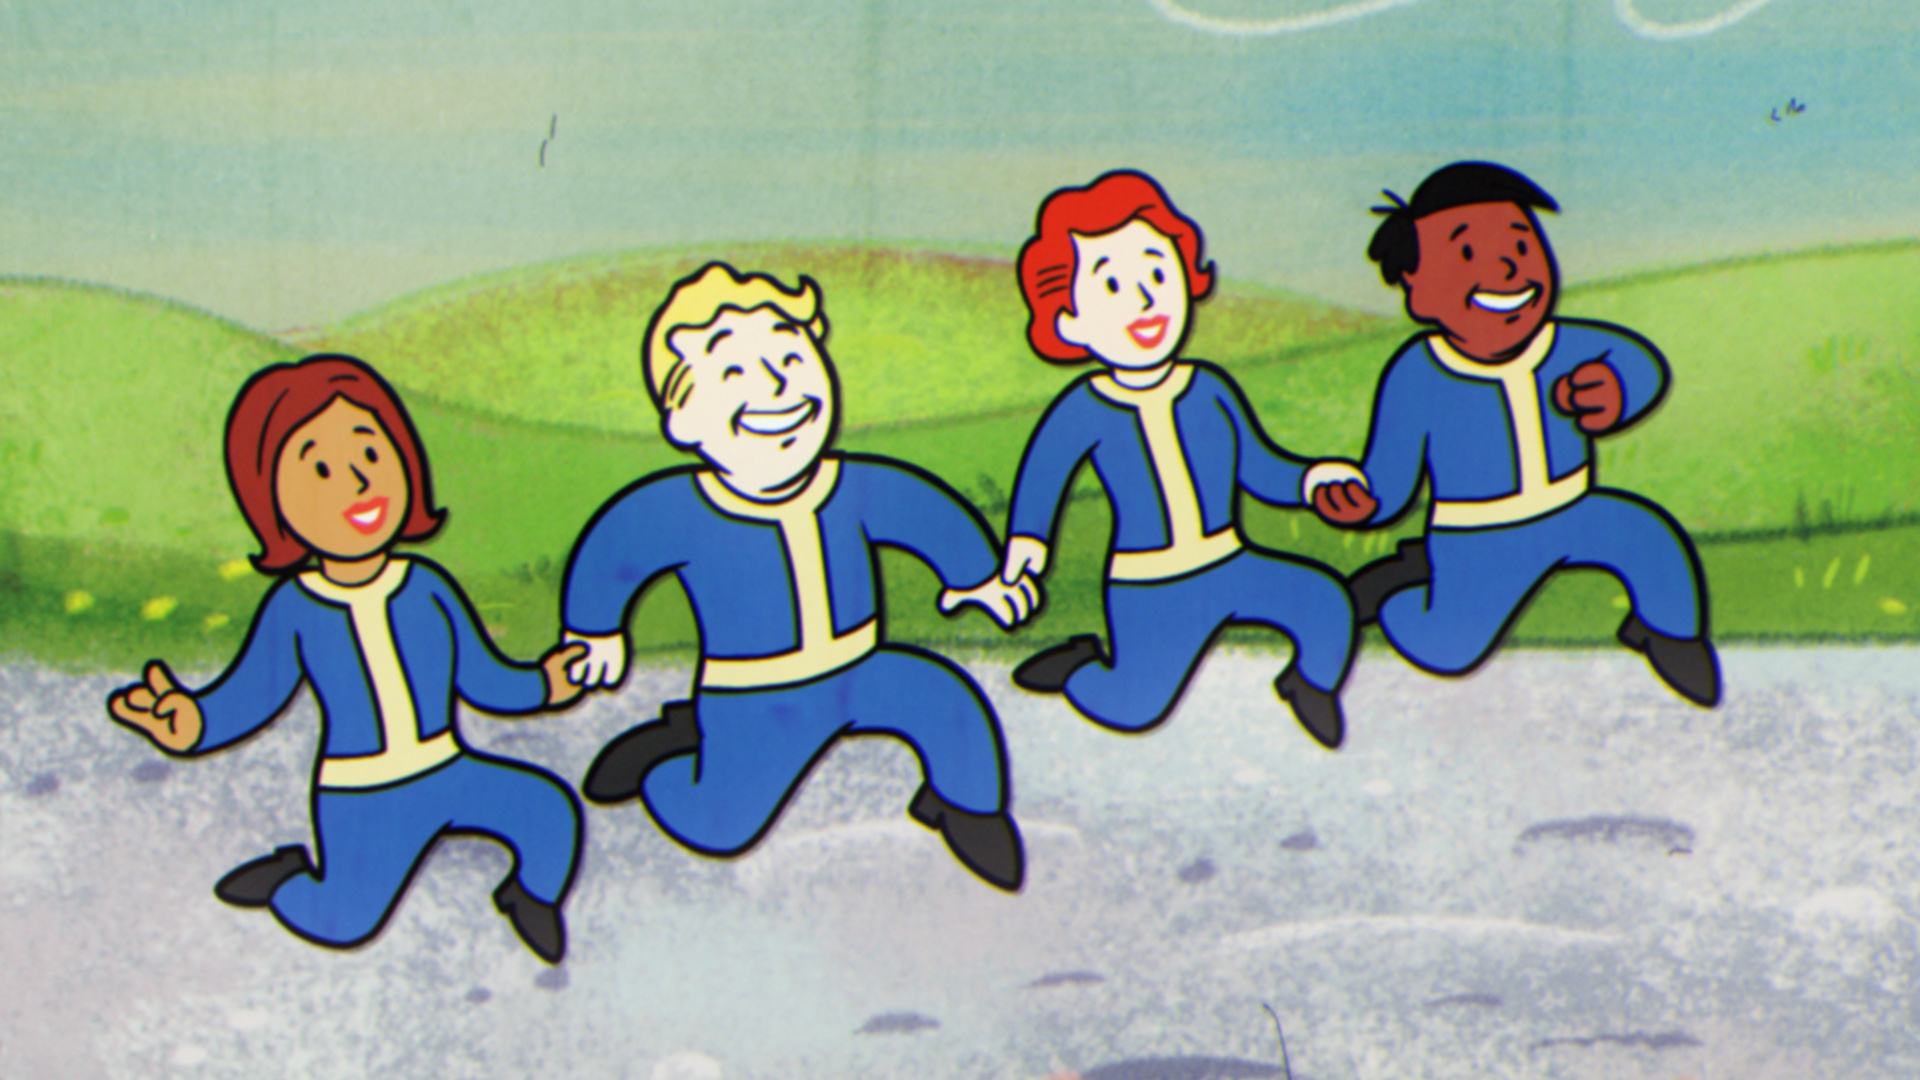 Thumbnail for Fallout 76 — Let's Work With Others: The Art of Cooperation